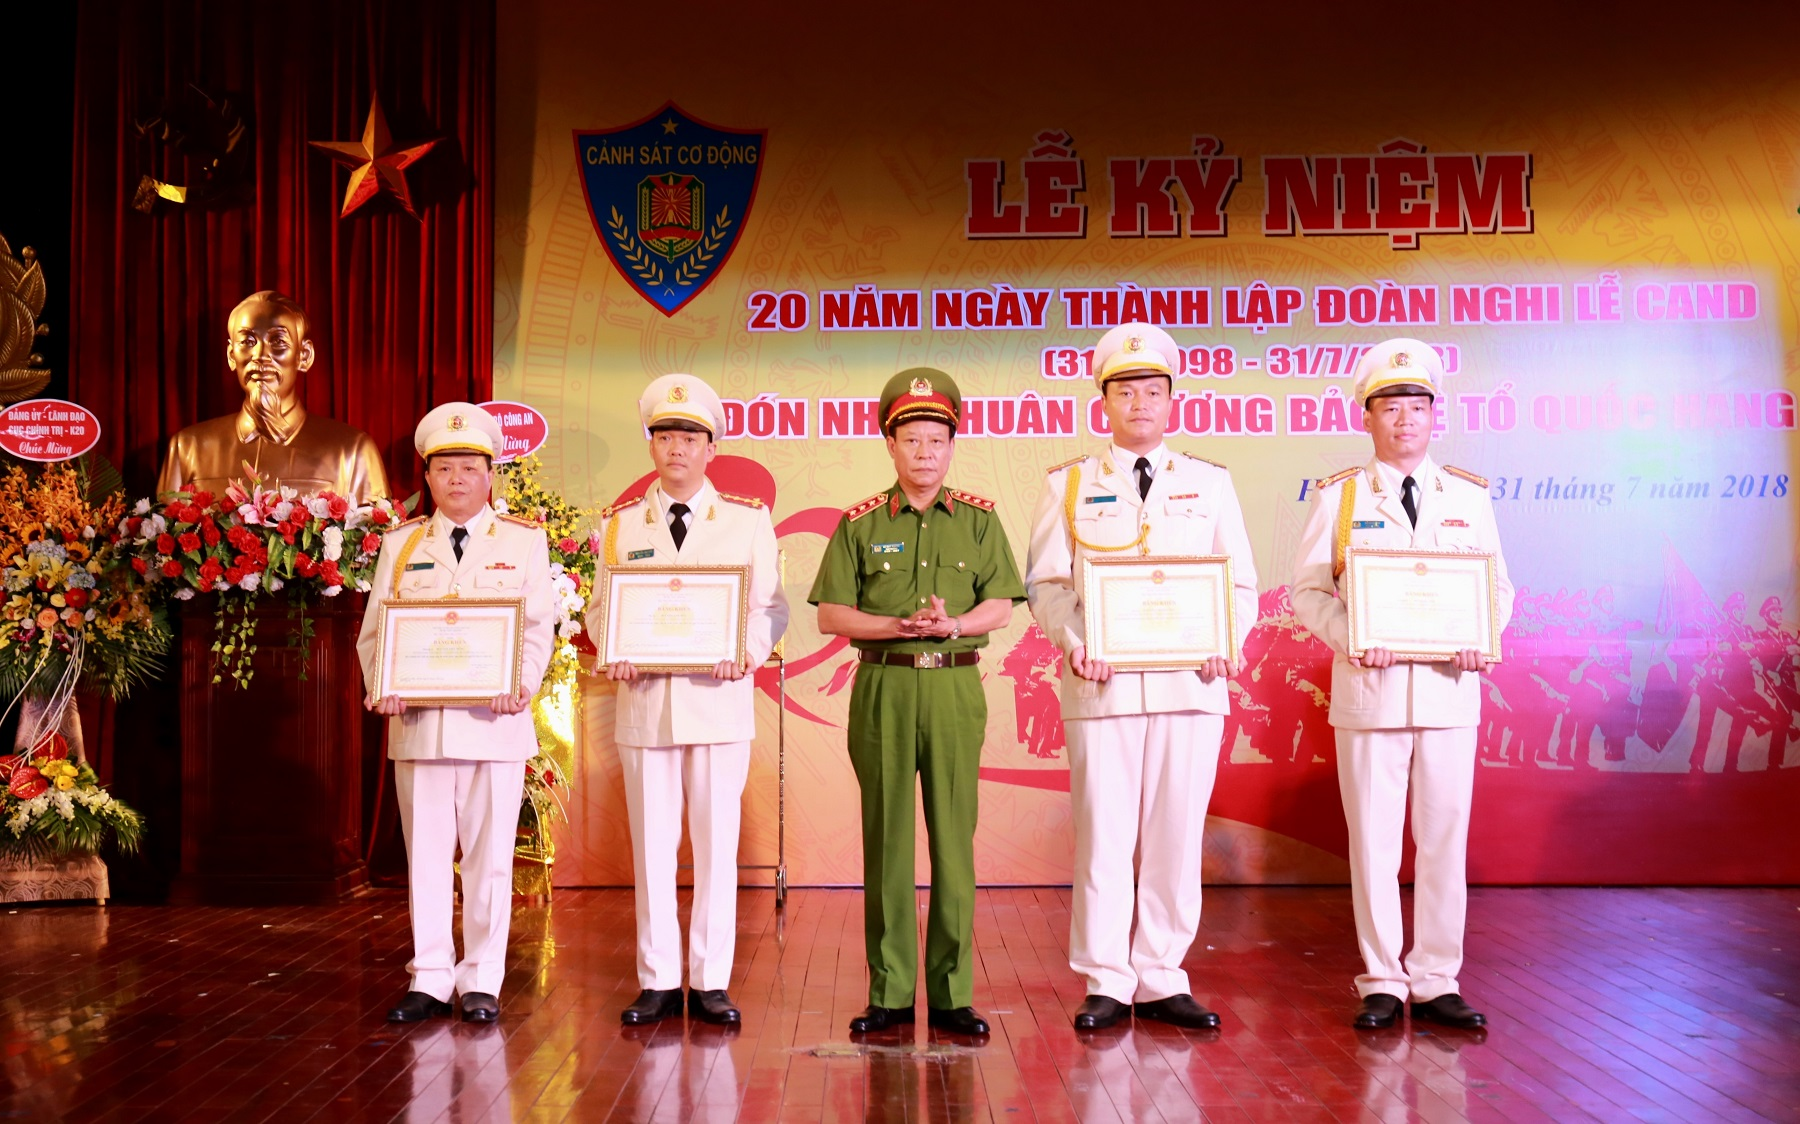 Deputy Minister Le Quy Vuong presents Certificates of Merit of the MPS to individuals and teams with outstanding achievements.